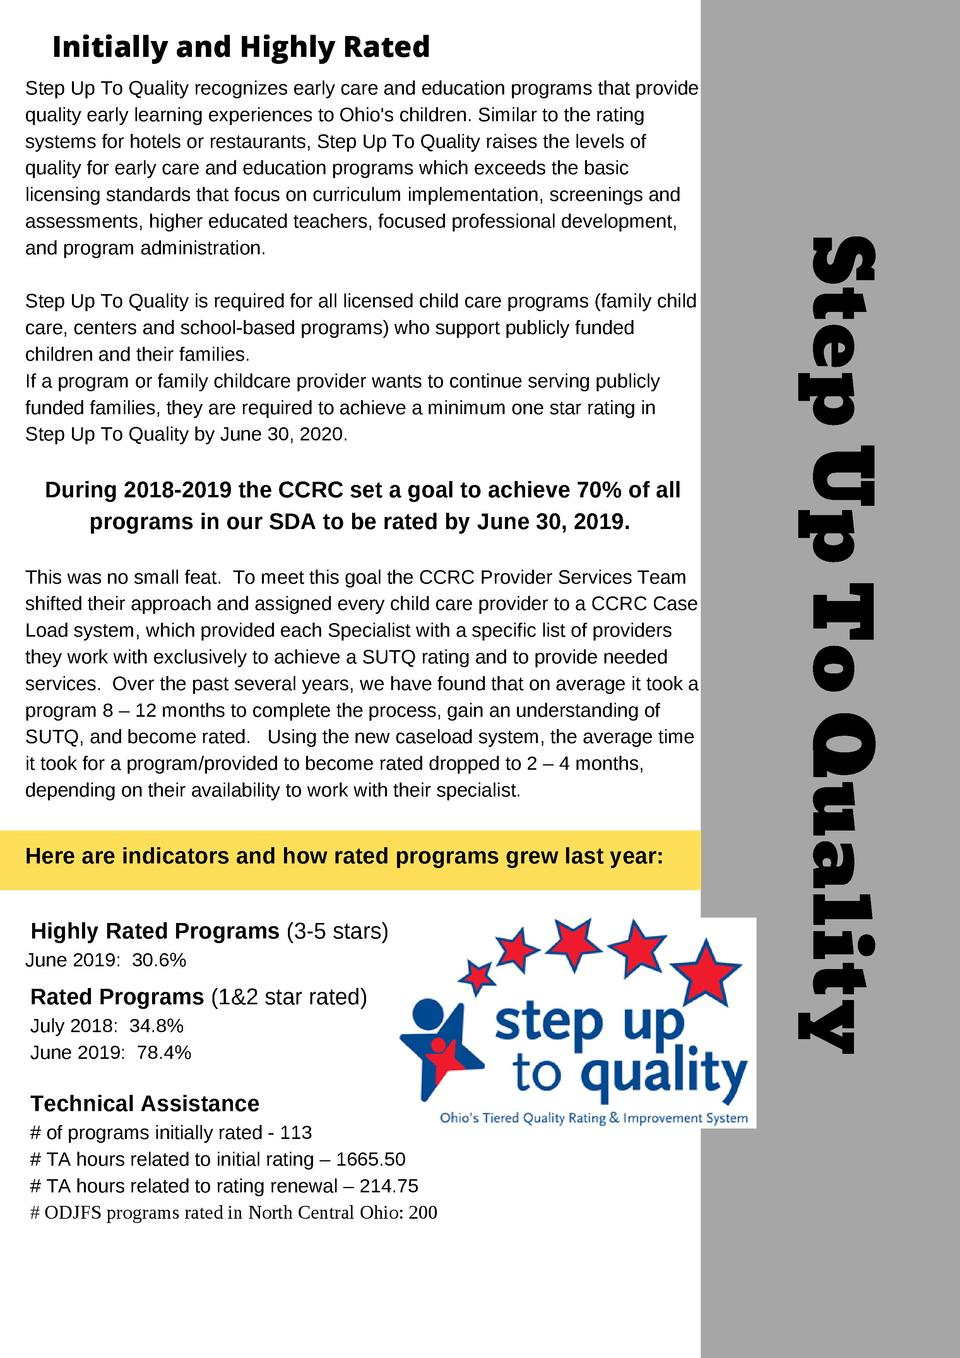 Initially and Highly Rated  Step Up To Quality is required for all licensed child care programs  family child care, center...